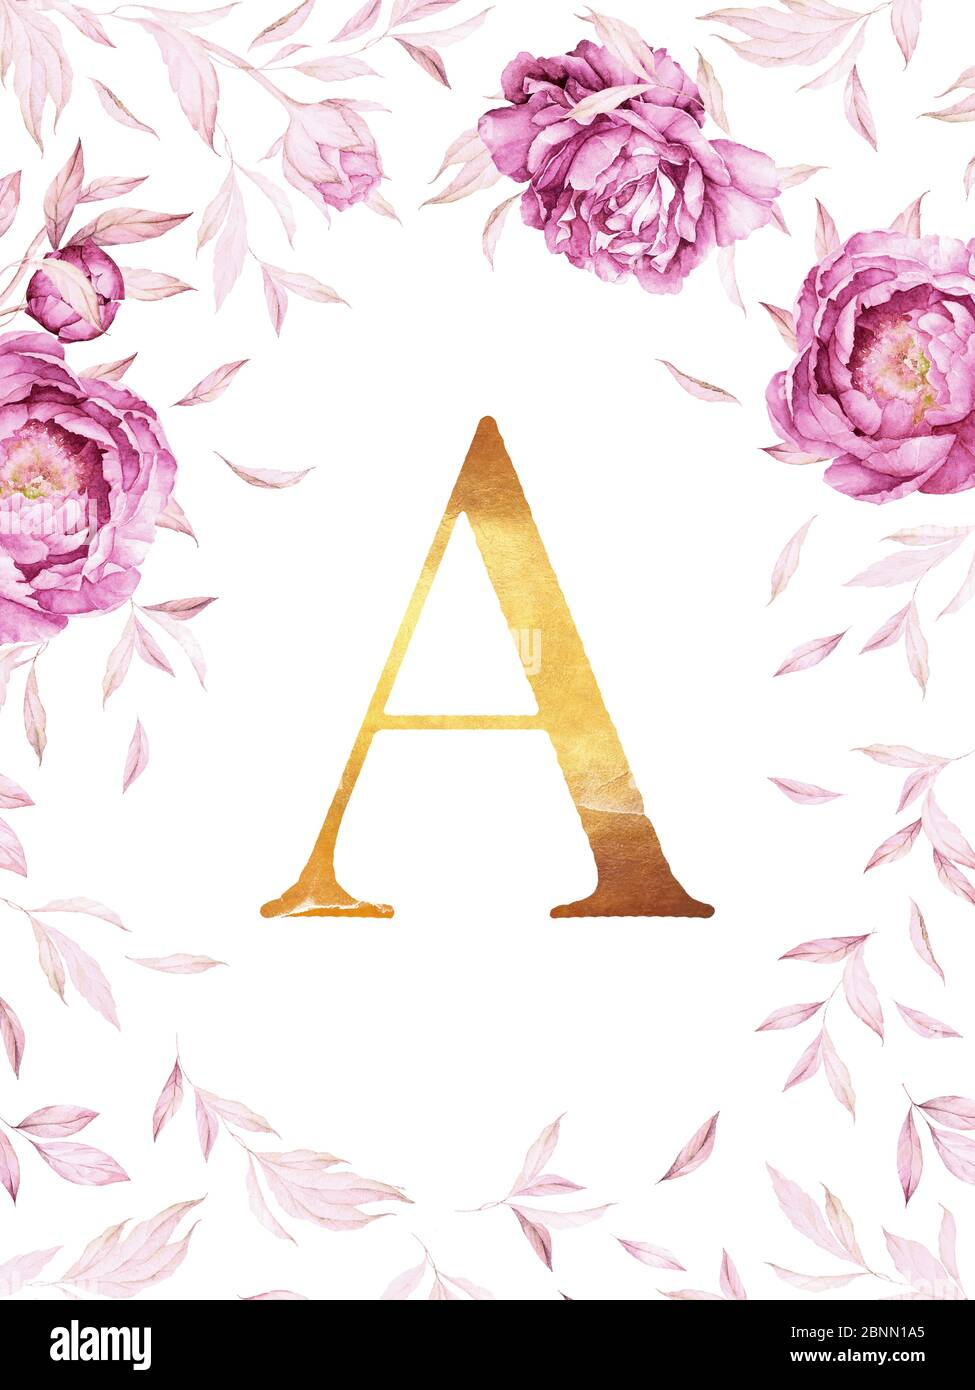 flower monogram floral wreather border watercolor pink peonies lush leaves rose gold custon newborn name poster floral background romantic wed 2BNN1A5